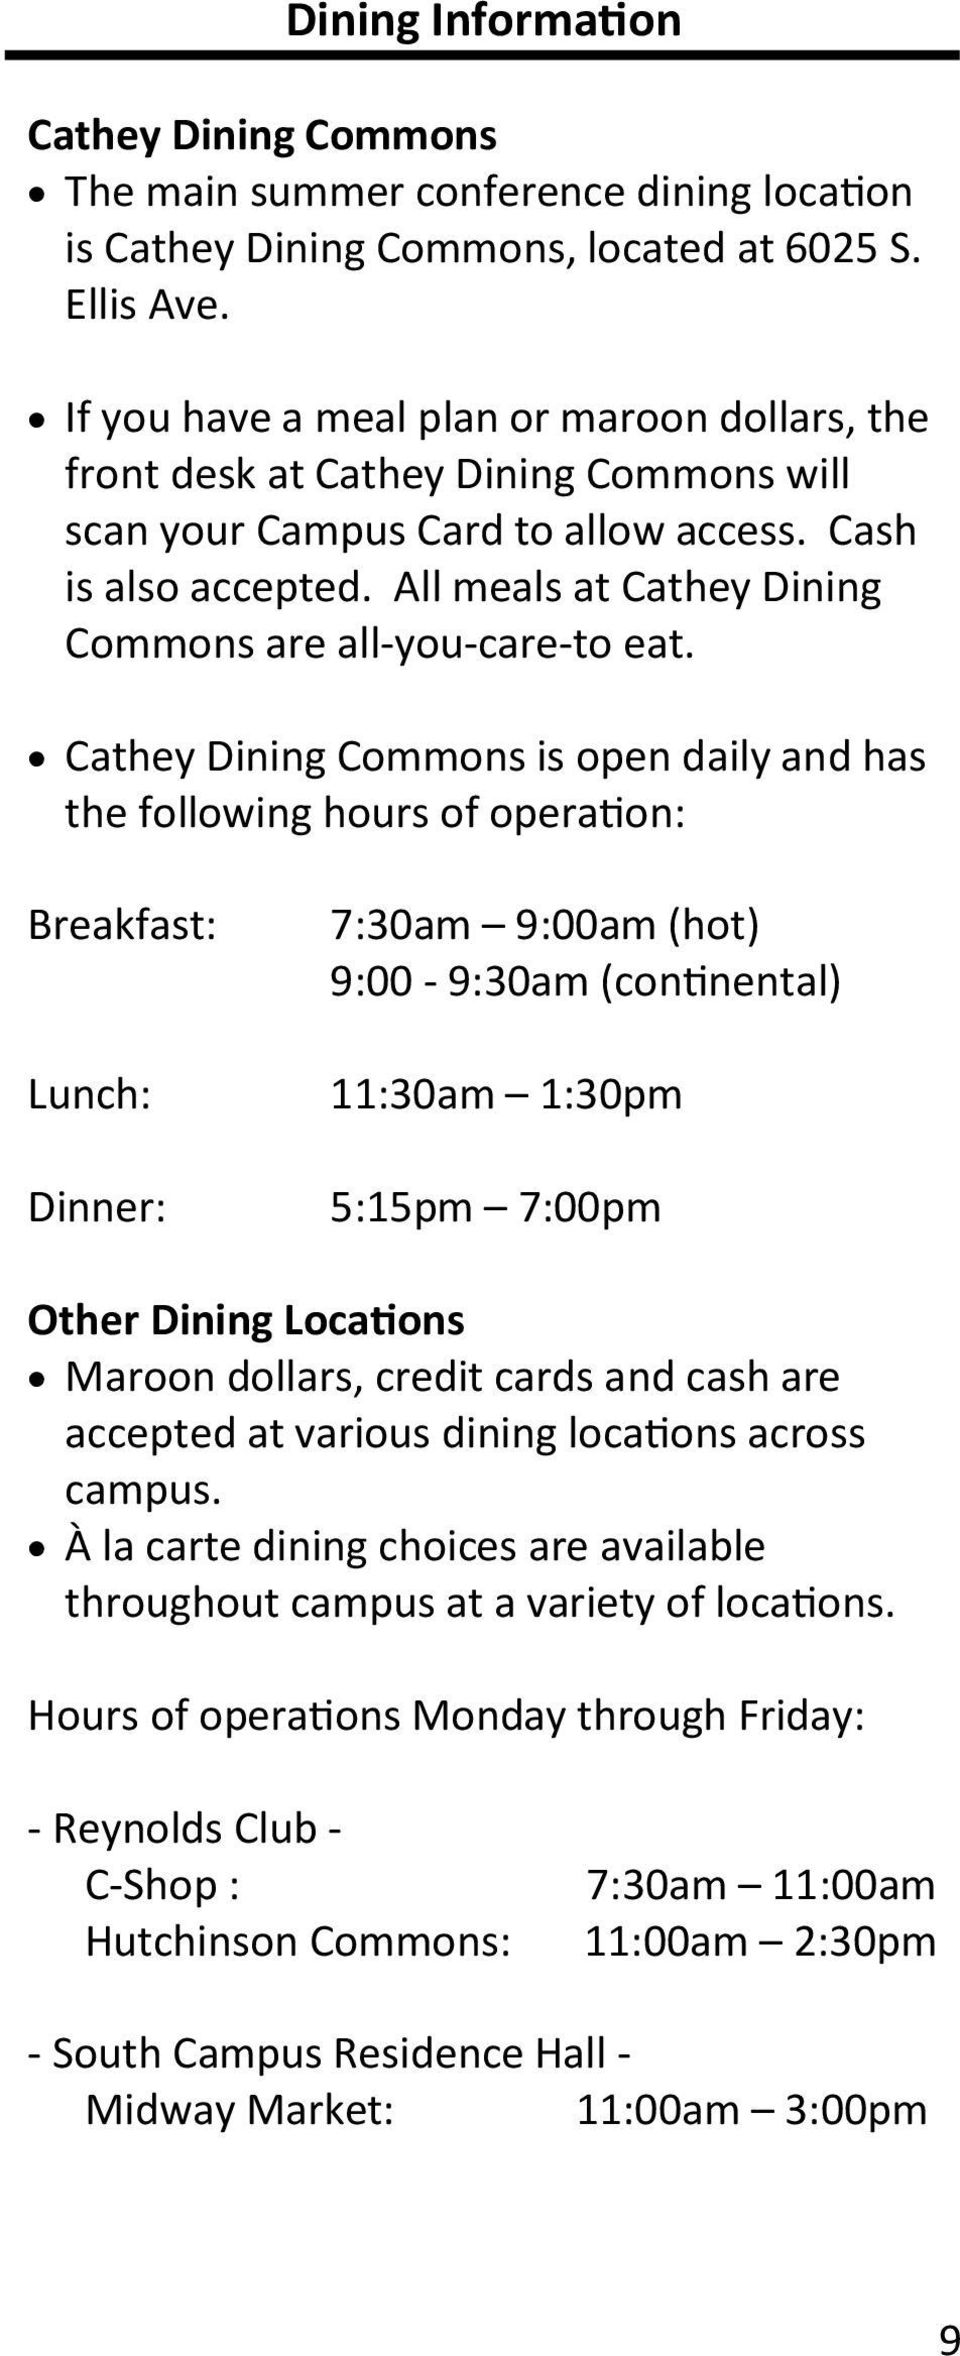 All meals at Cathey Dining Commons are all-you-care-to eat.